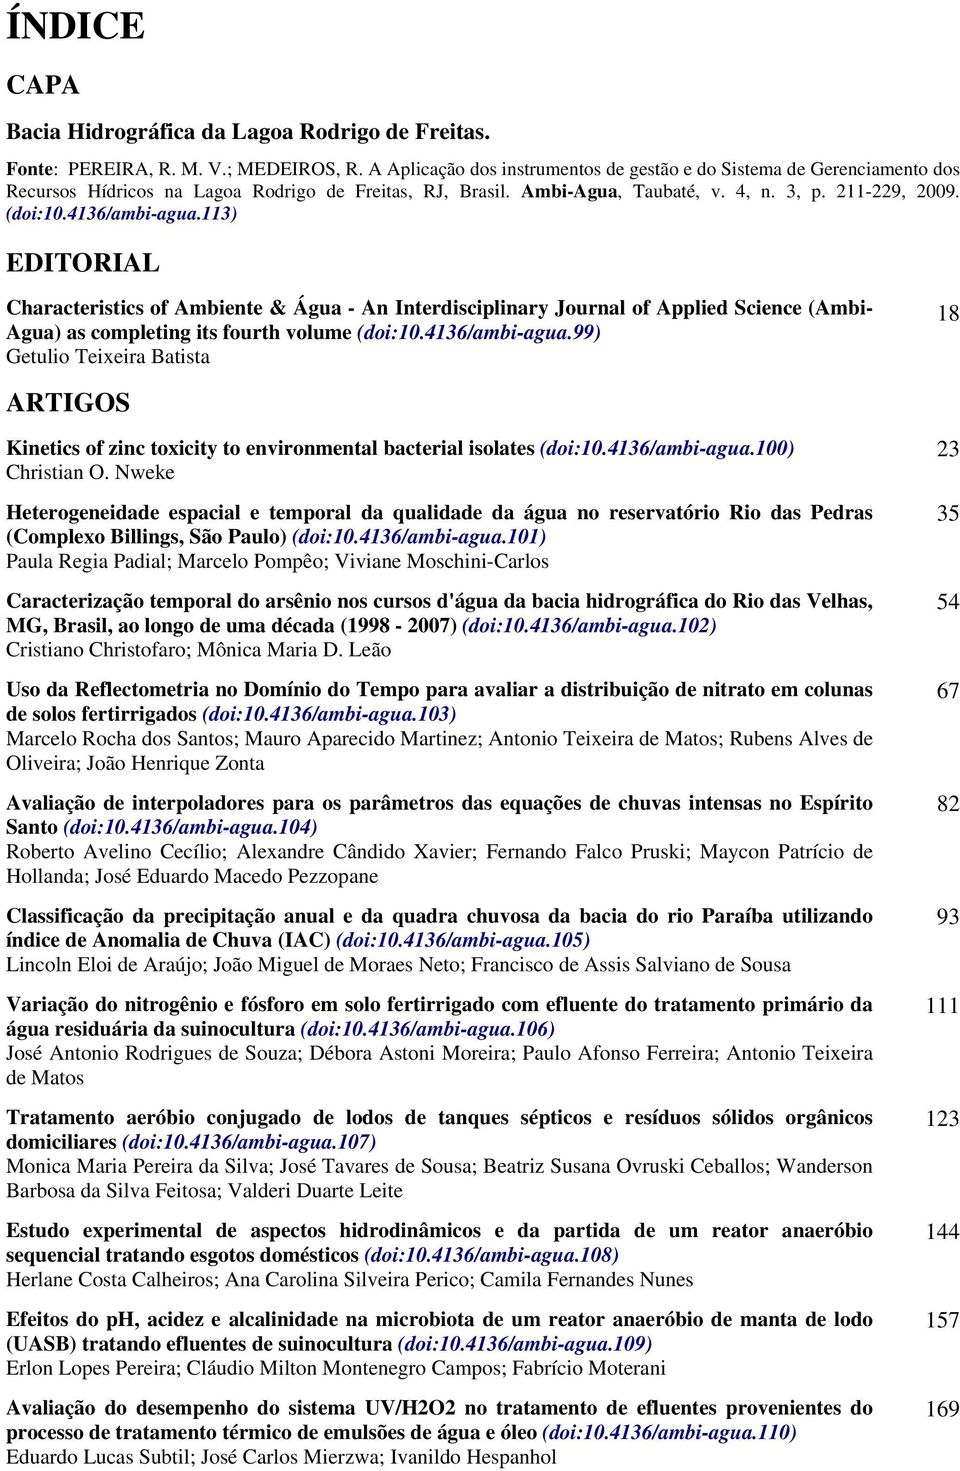 4136/ambi-agua.113) EDITORIAL Characteristics of Ambiente & Água - An Interdisciplinary Journal of Applied Science (Ambi- Agua) as completing its fourth volume (doi:10.4136/ambi-agua.99) Getulio Teixeira Batista 18 ARTIGOS Kinetics of zinc toxicity to environmental bacterial isolates (doi:10.